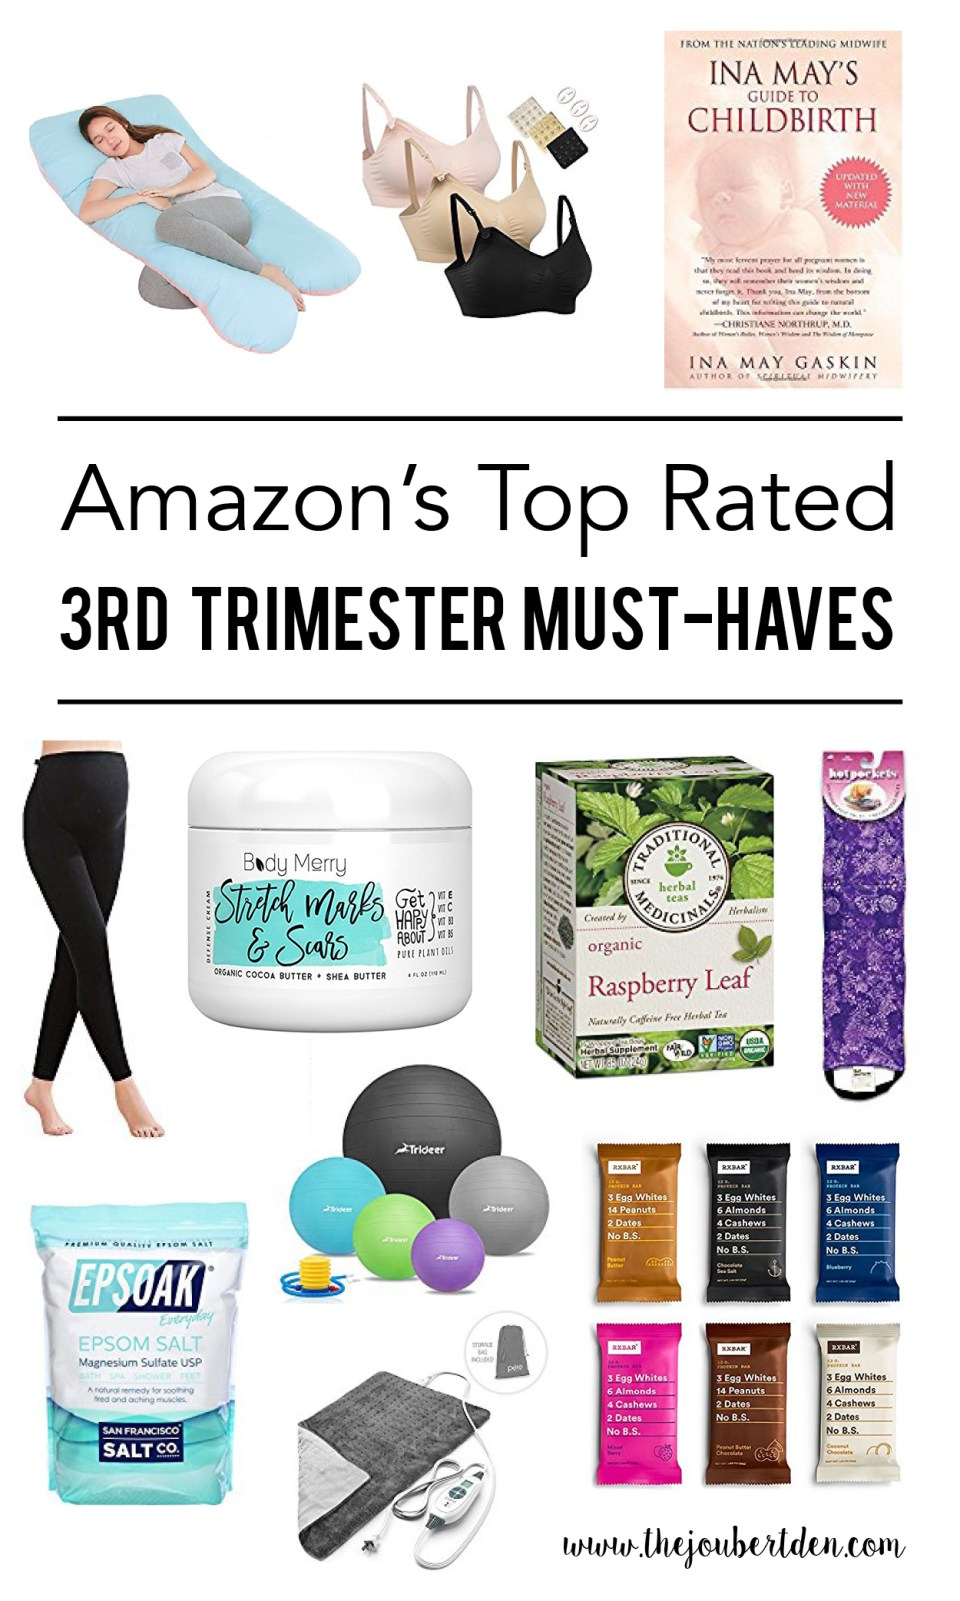 Amazon's Top Rated 3rd Trimester Must-Haves